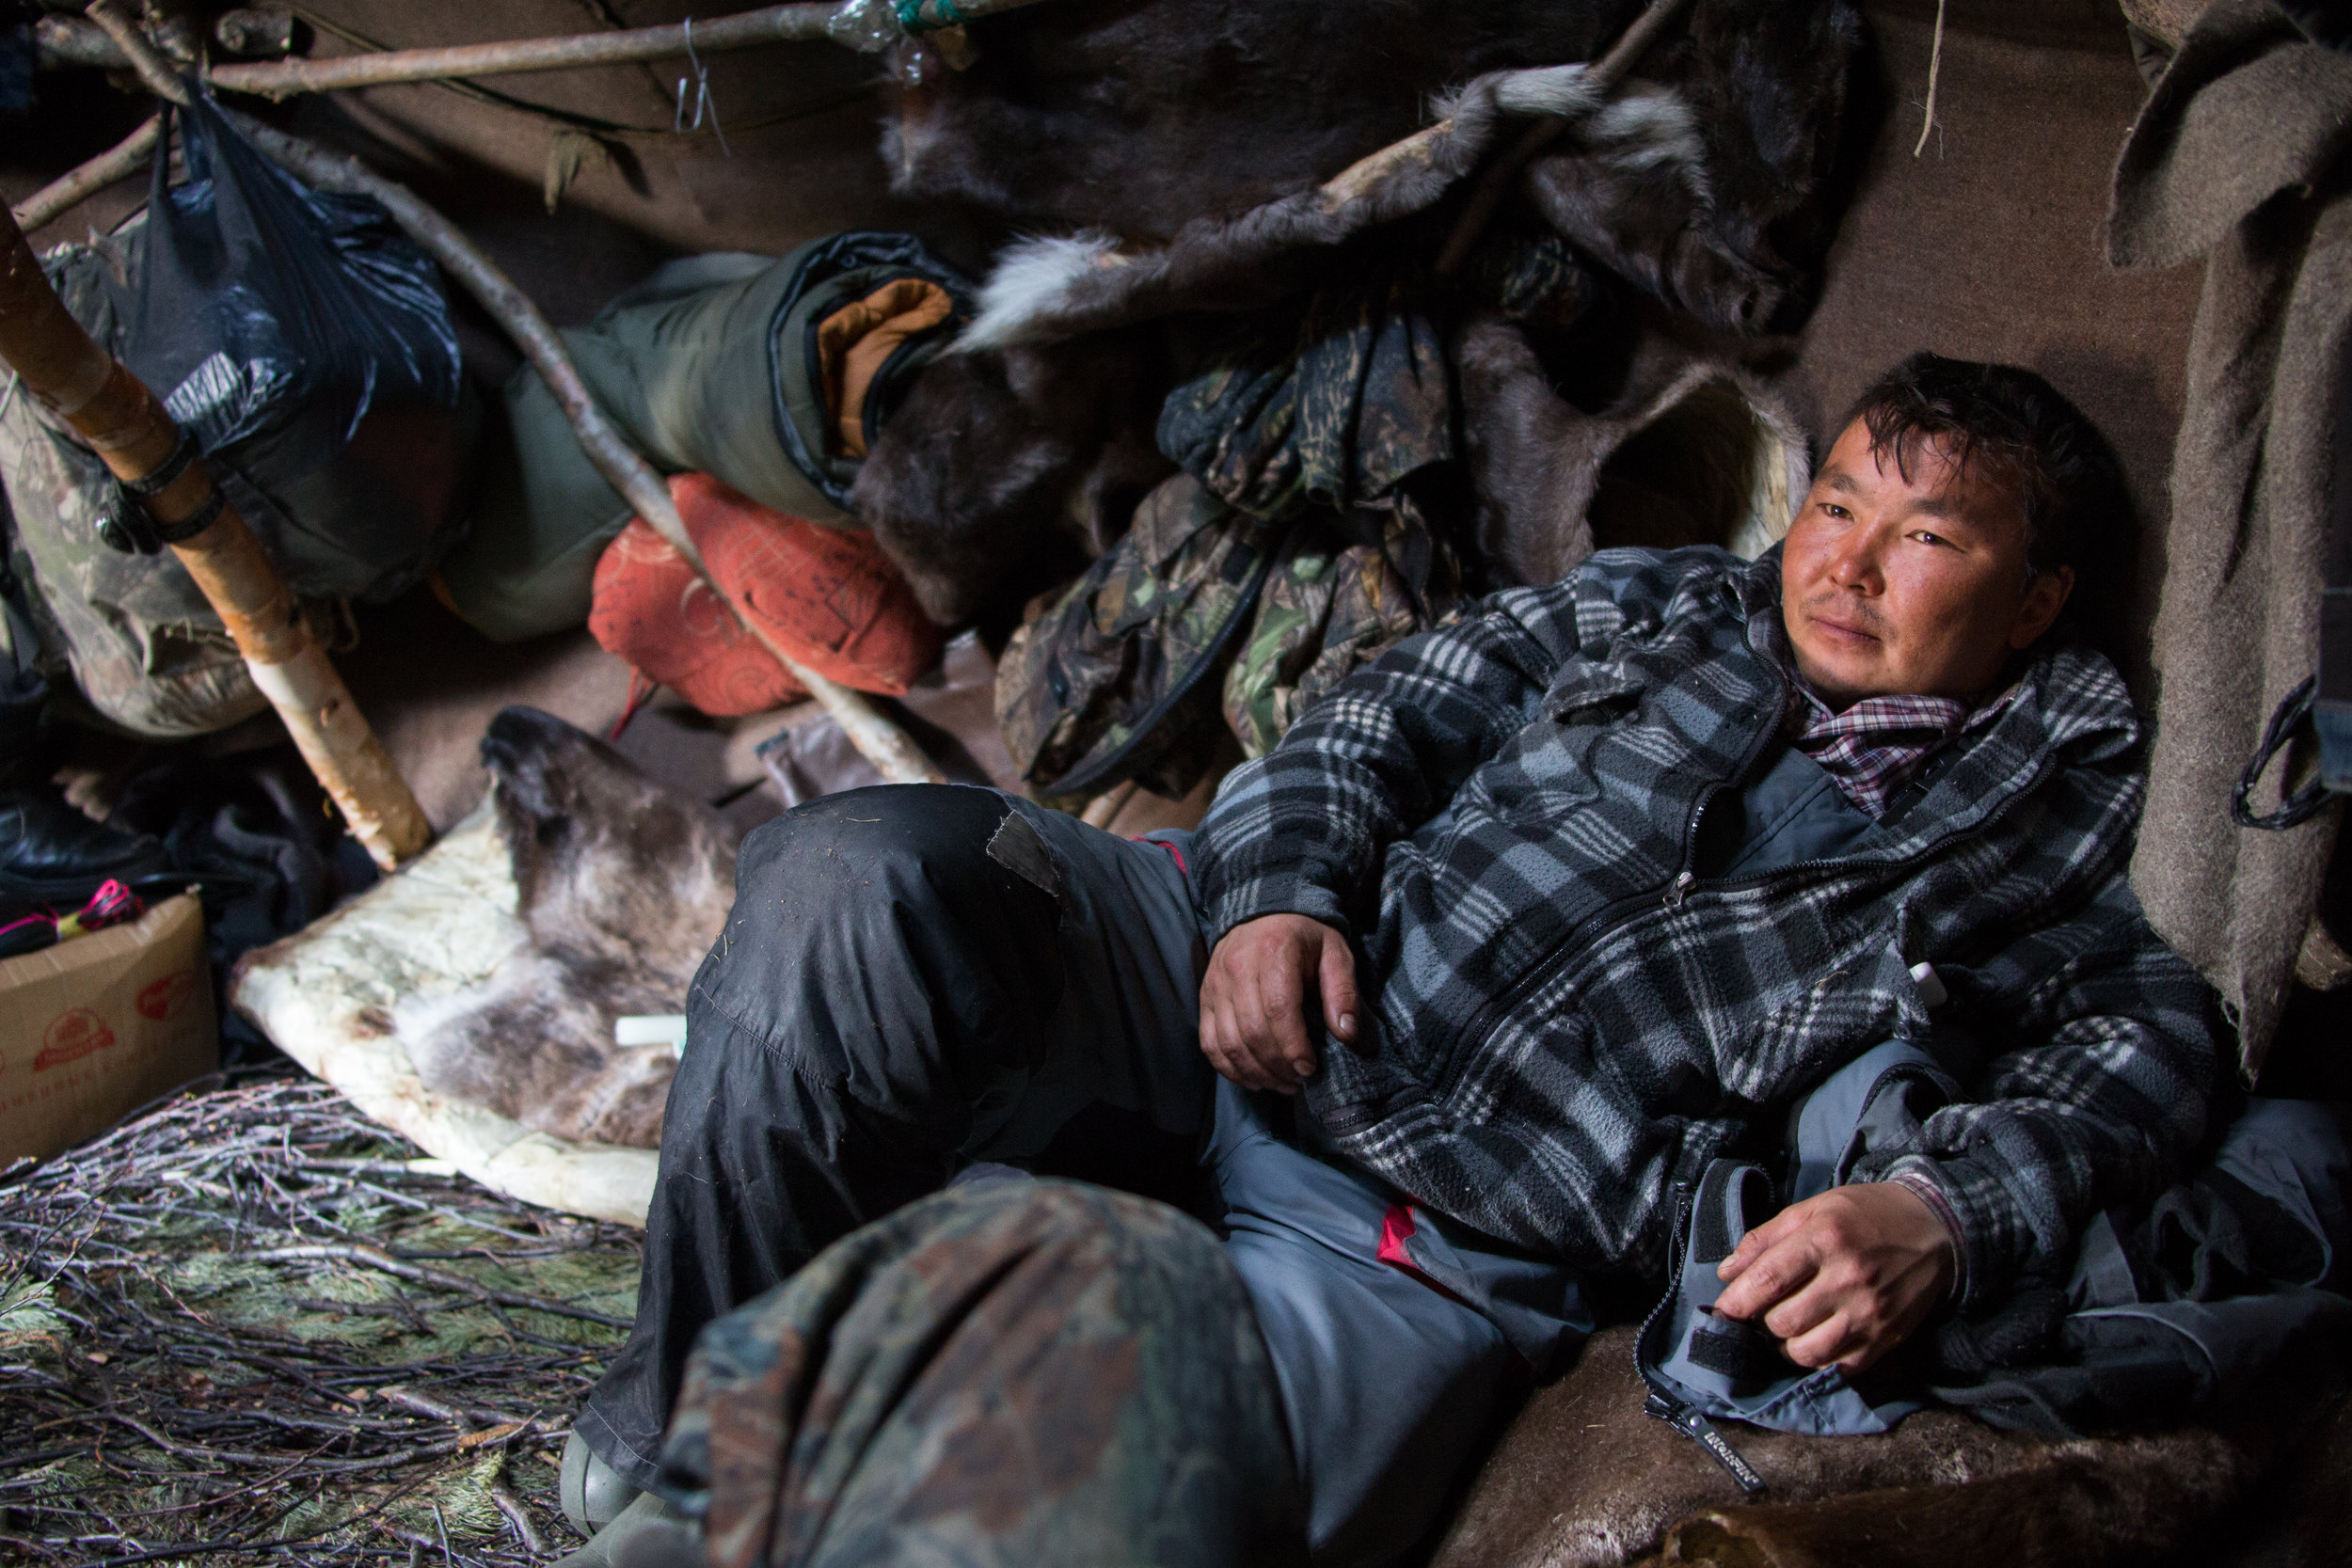 An Even reindeer herder takes a break in his winter yurt in the Kamchatka backcountry. Ichinsky District, Kamchatka, Russia.